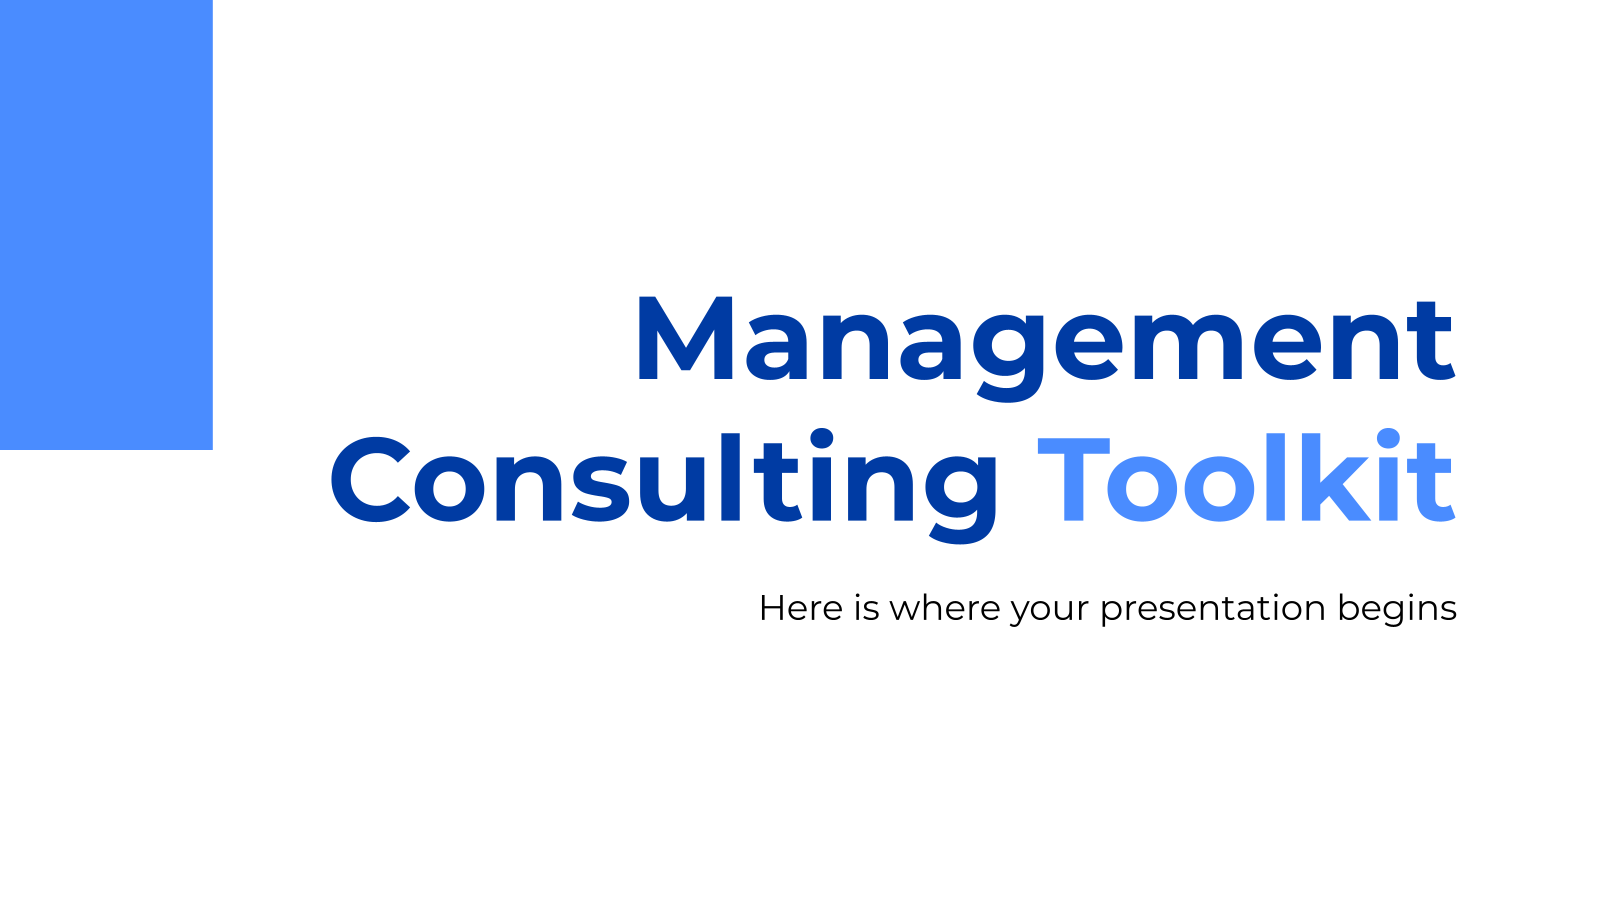 Management Consulting Toolkit presentation template